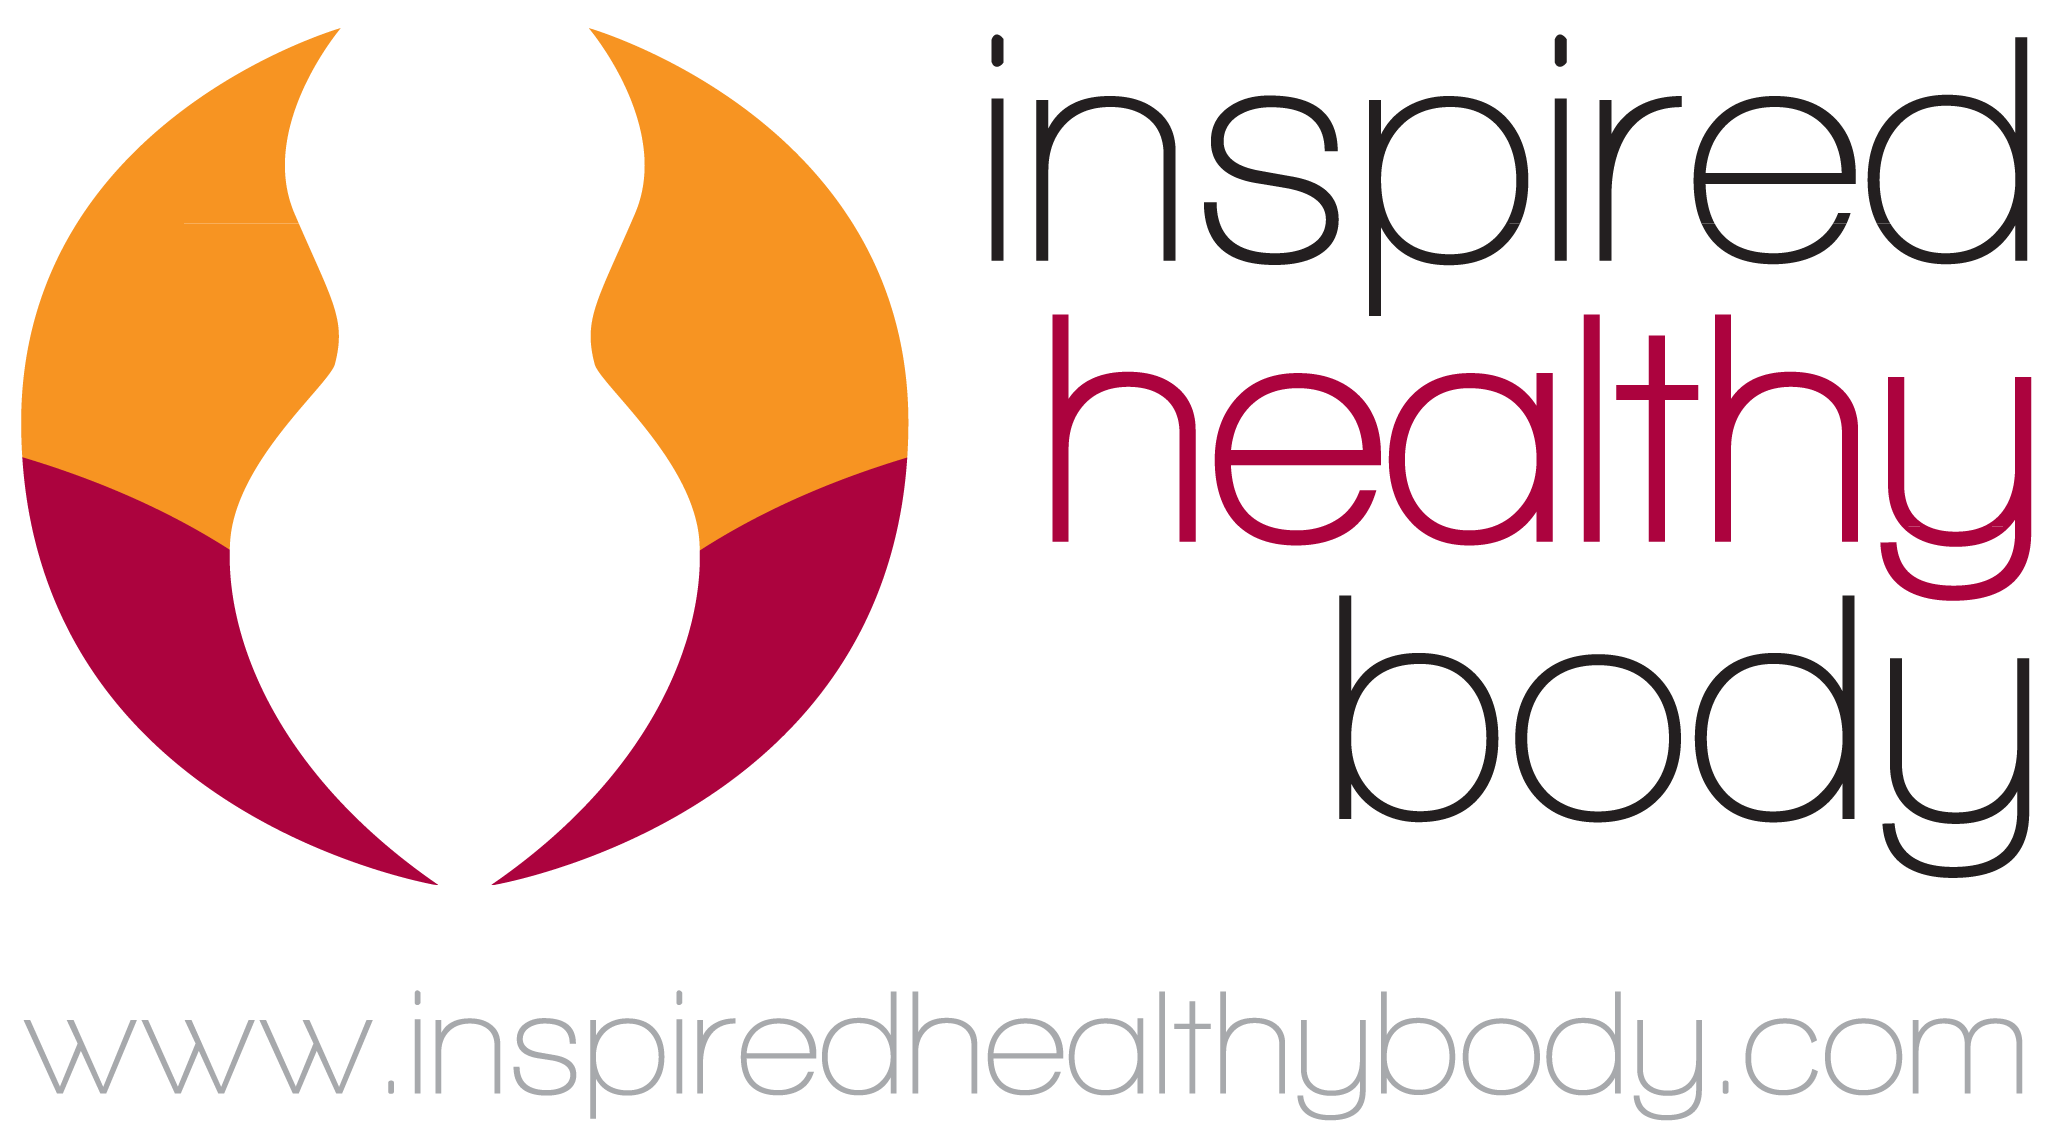 Inspired Healthy Body